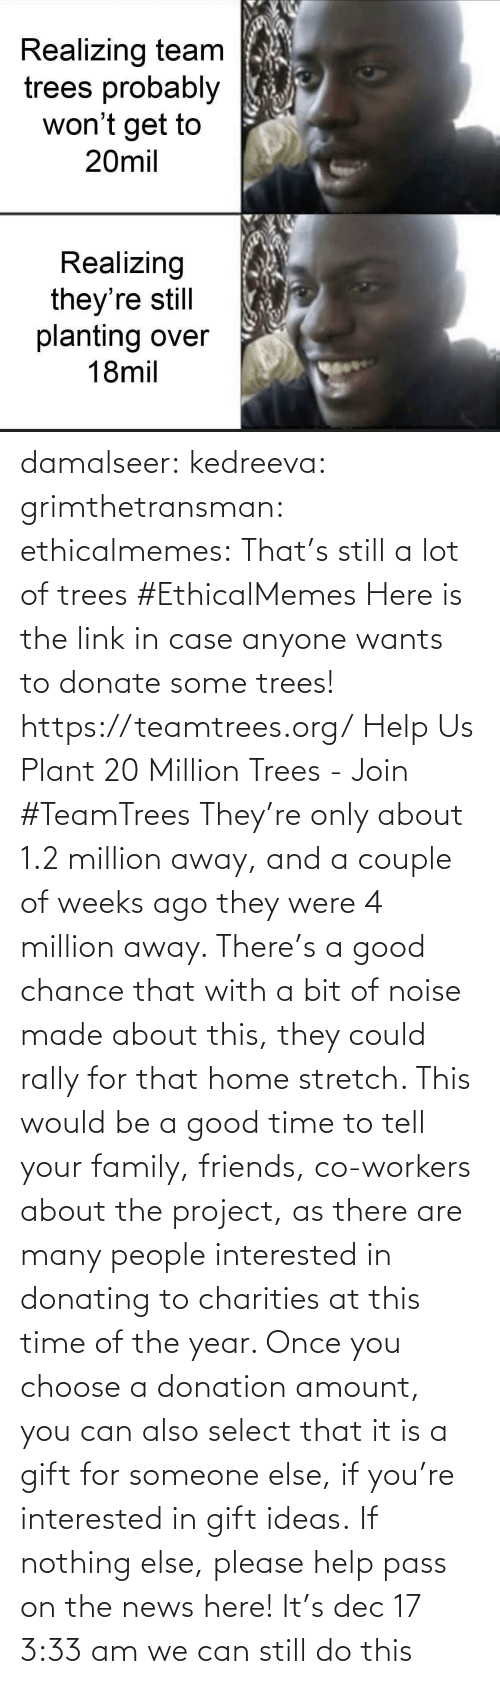 Link: Realizing team  trees probably  won't get to  20mil  Realizing  they're still  planting over  18mil damalseer:  kedreeva: grimthetransman:  ethicalmemes:  That's still a lot of trees #EthicalMemes   Here is the link in case anyone wants to donate some trees!  https://teamtrees.org/ Help Us Plant 20 Million Trees - Join #TeamTrees  They're only about 1.2 million away, and a couple of weeks ago they were 4 million away. There's a good chance that with a bit of noise made about this, they could rally for that home stretch. This would be a good time to tell your family, friends, co-workers about the project, as there are many people interested in donating to charities at this time of the year. Once you choose a donation amount, you can also select that it is a gift for someone else, if you're interested in gift ideas. If nothing else, please help pass on the news here!    It's dec 17 3:33 am we can still do this